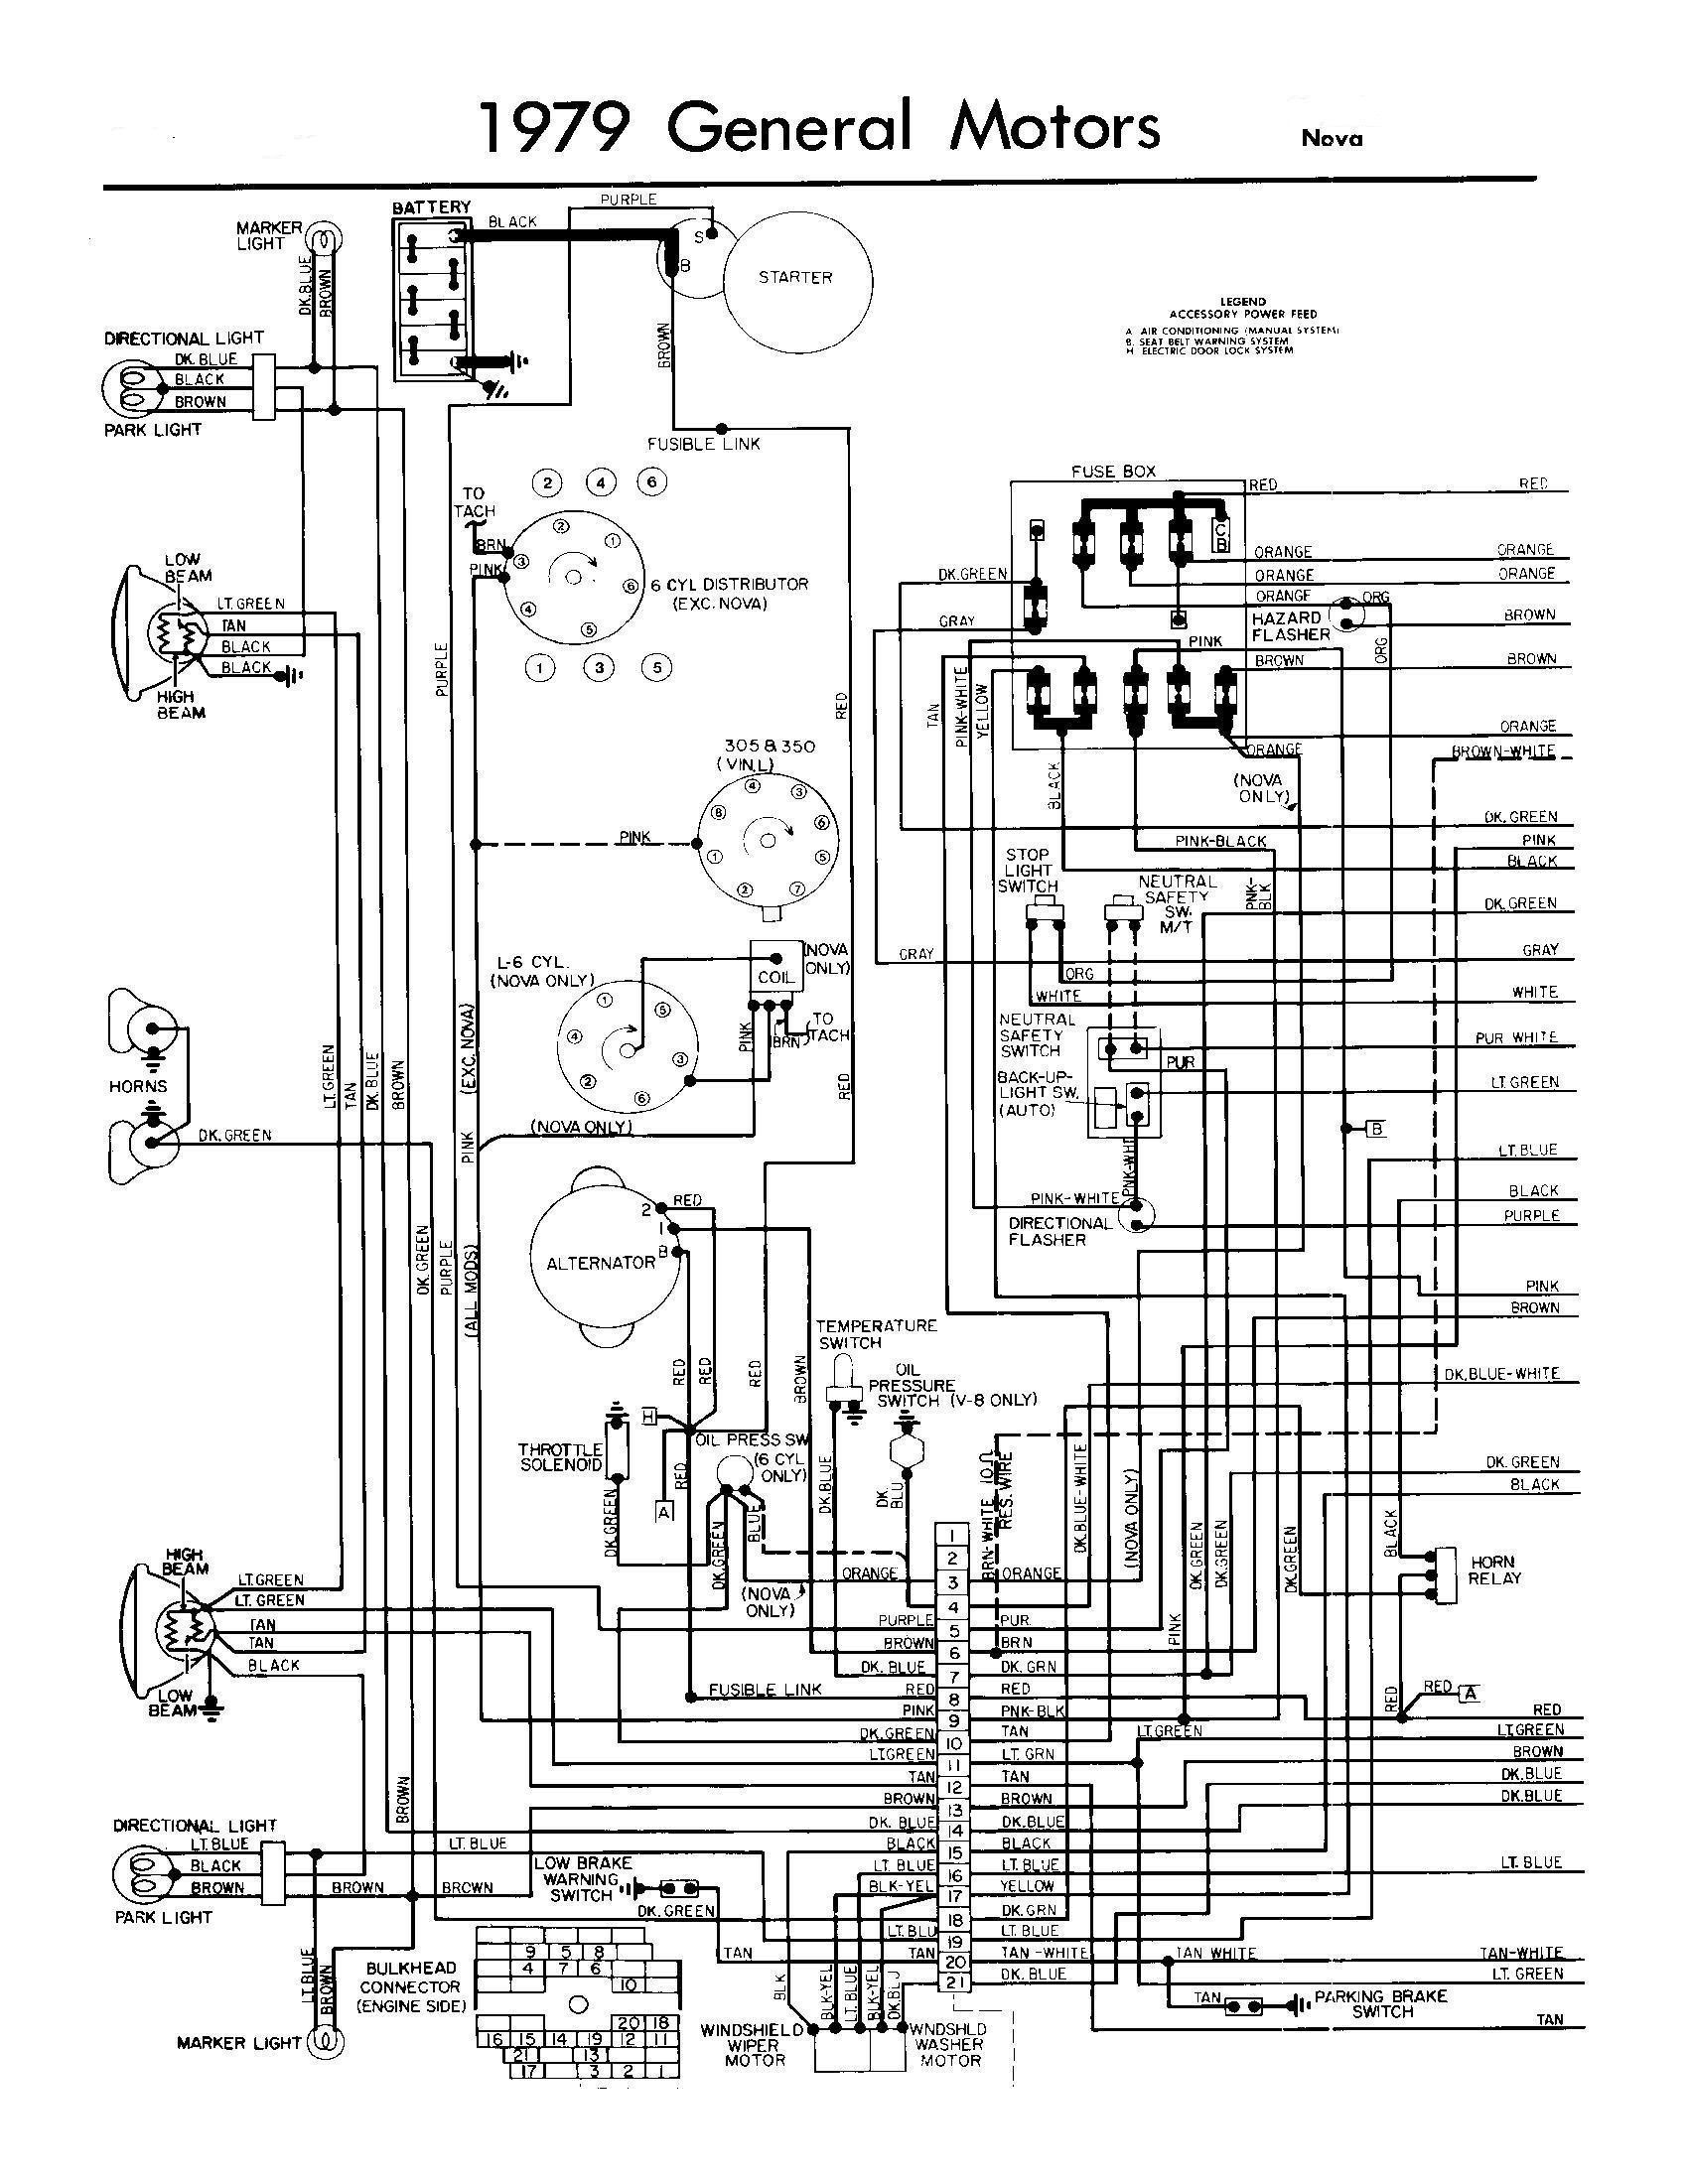 75 Truck Wiring Harness Diagram | Wiring Diagrams on 2002 ford explorer sport trac wiring schematic, 2003 ford ranger neutral safety switch, 1999 ford windstar wiring schematic, 2010 ford flex wiring schematic, 2010 ford fusion wiring schematic, 2004 ford excursion wiring schematic, 2000 ford mustang wiring schematic, 2003 ford ranger battery, 1998 ford windstar wiring schematic, 2007 ford taurus wiring schematic, 2001 ford mustang wiring schematic, 2008 ford f-150 wiring schematic, 1979 ford f150 wiring schematic, 2003 ford ranger electrical, 2002 ford f-250 wiring schematic, 2003 ford ranger steering, 2003 ford ranger horn relay, 2003 ford ranger gauges, 2003 ford ranger brake light, 2003 ford ranger fuel pump relay,